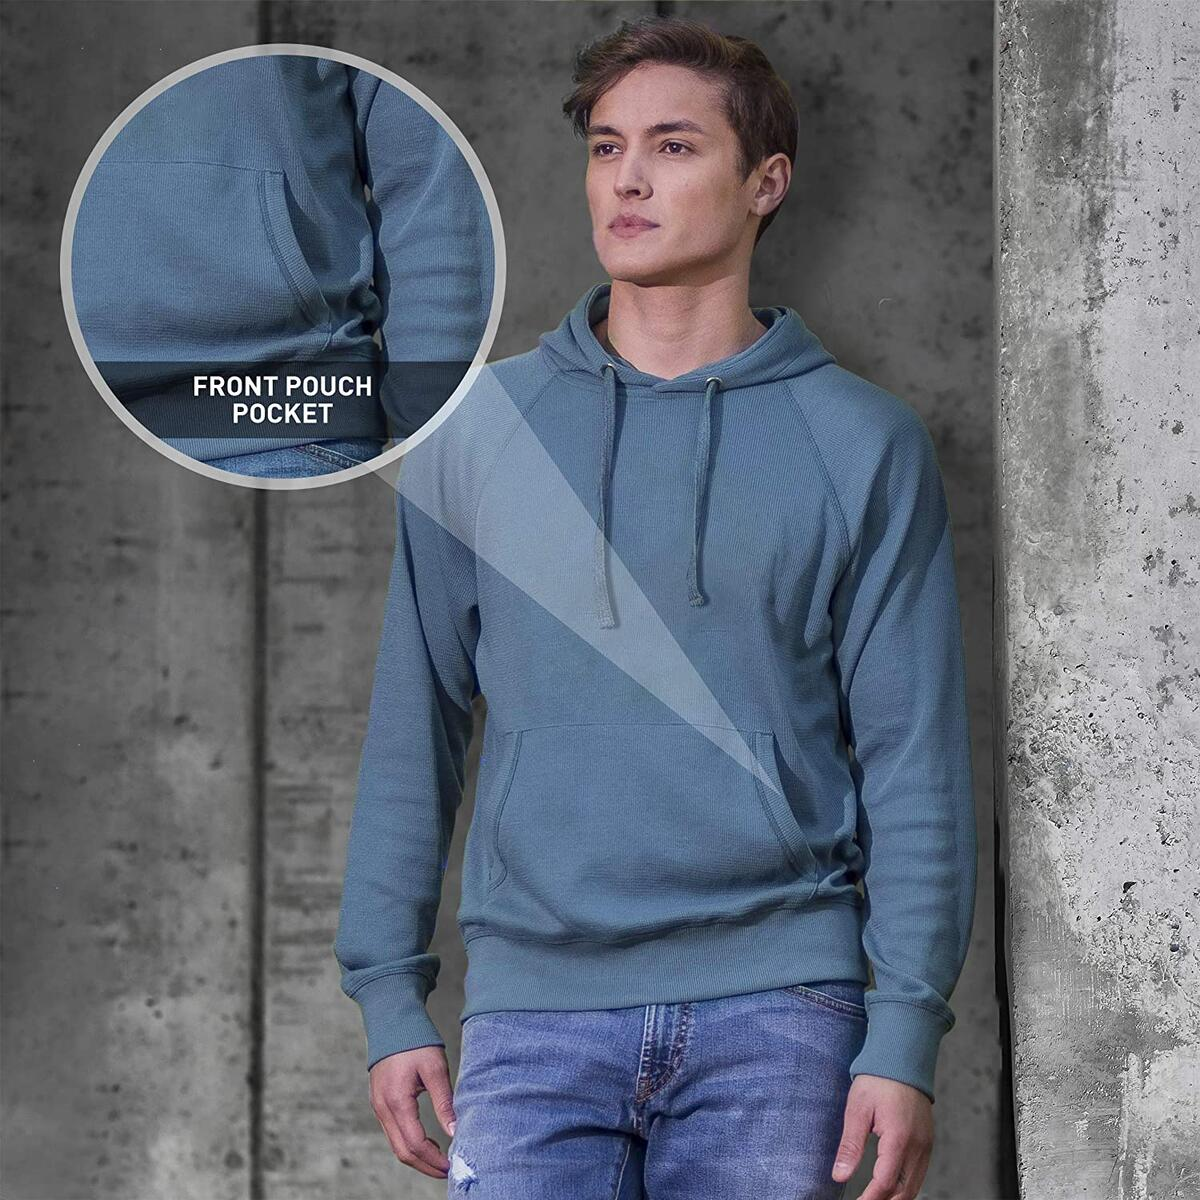 Thermal Shirts for Men Long Sleeve Hooded T Shirt-Mens Thermal Long Sleeve Shirt